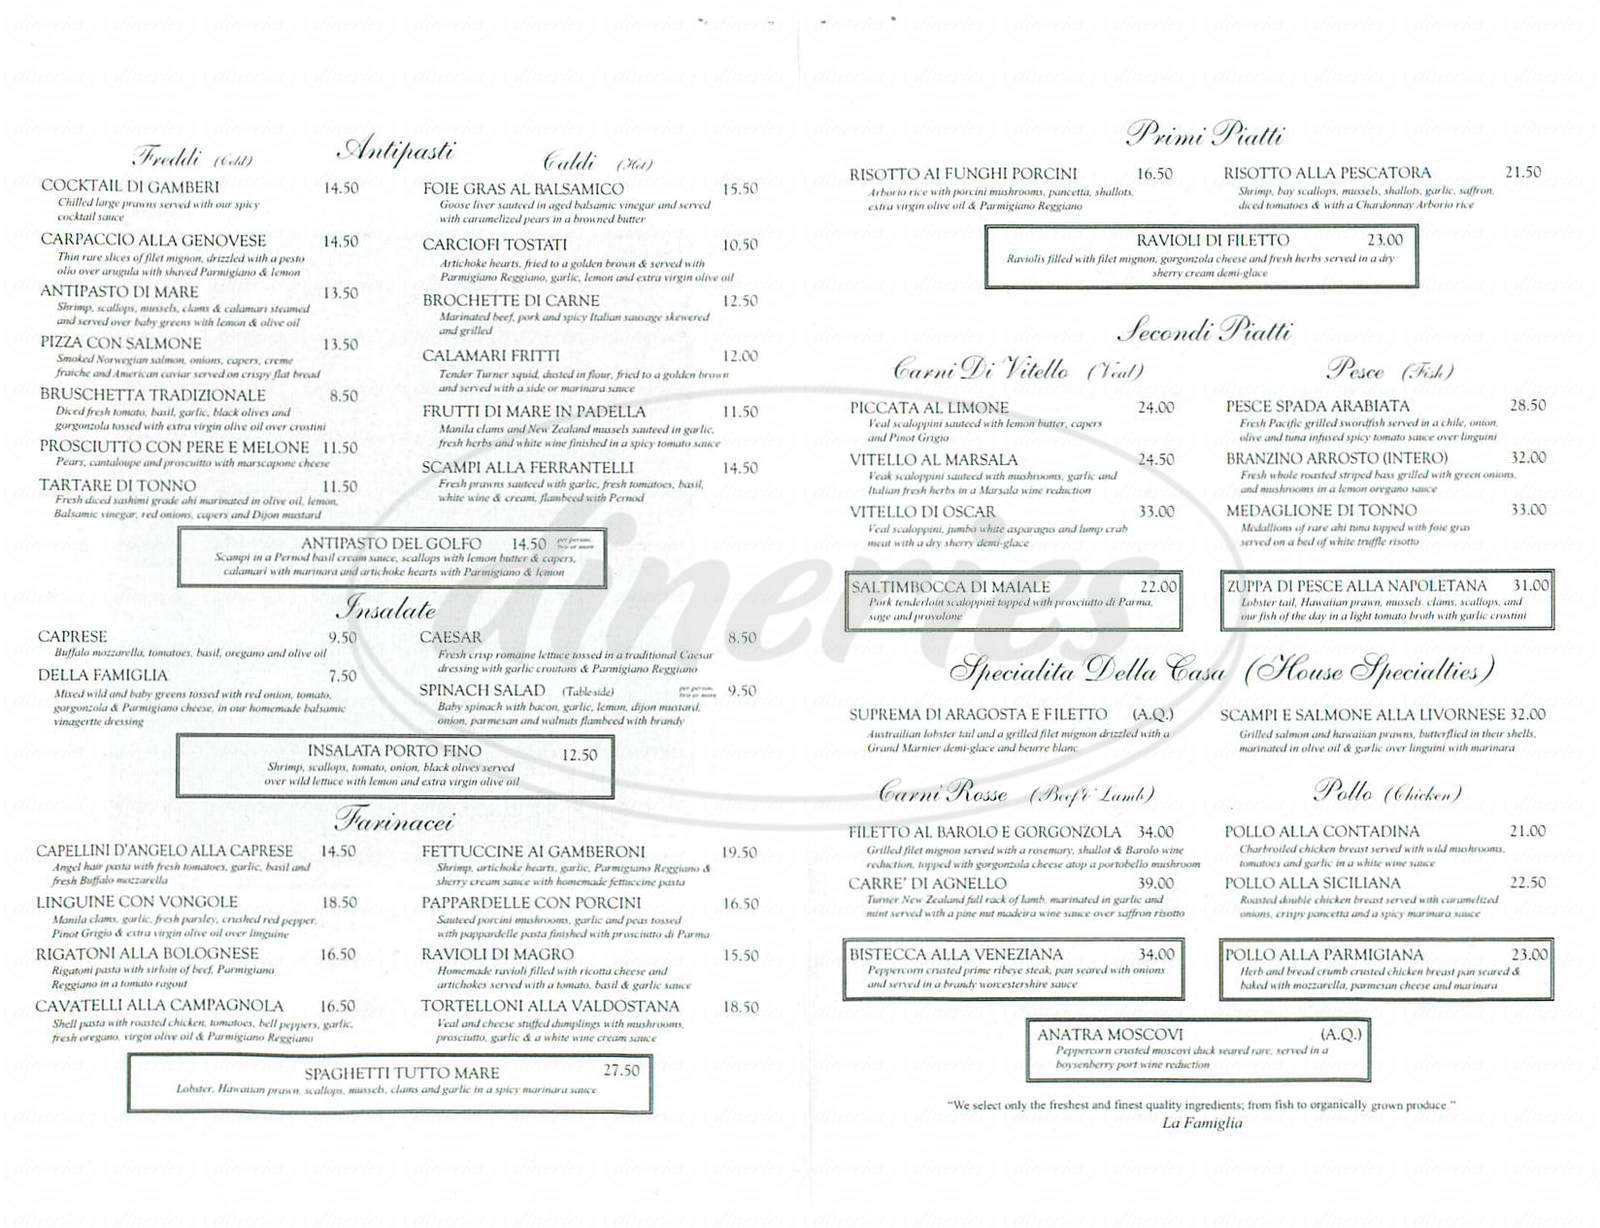 menu for Ristorante Ferrantelli